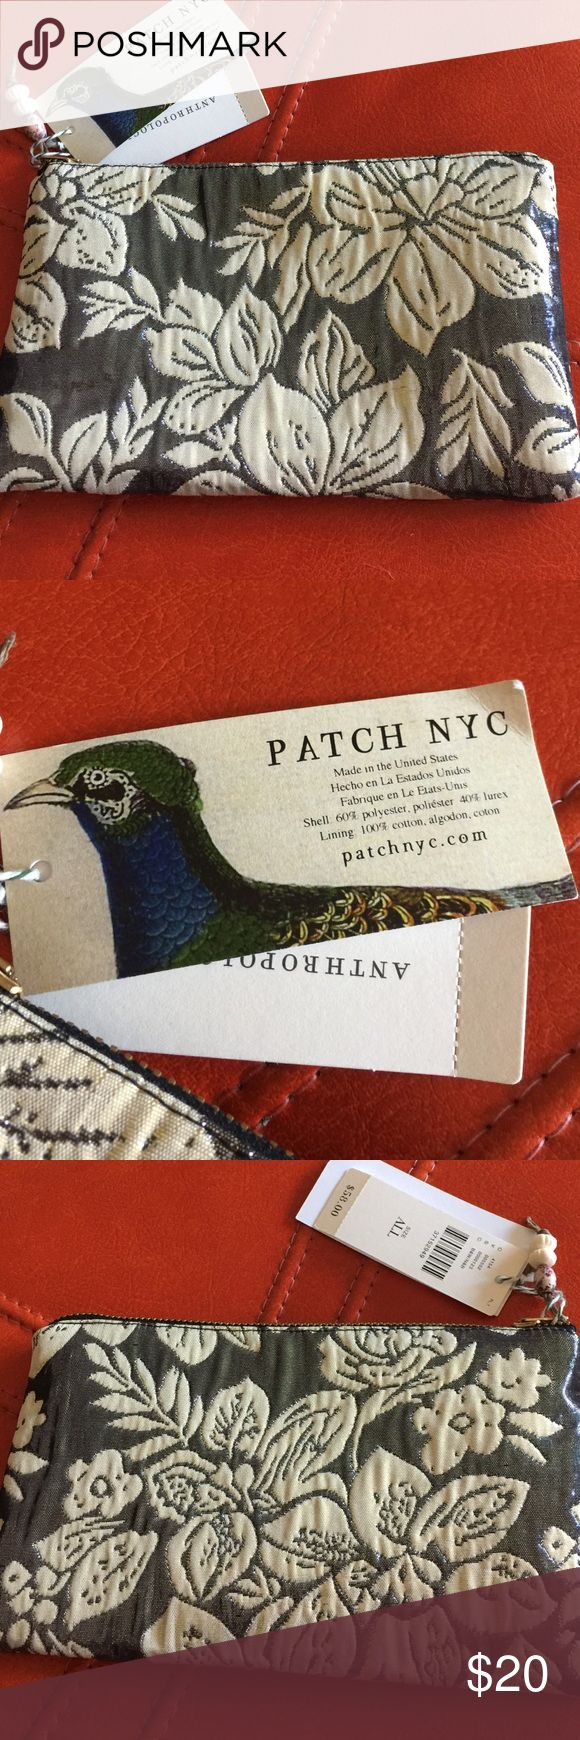 """ANTHROPOLOGIE PATCH NYC COSMETIC BAG NWT $58 ANTHROPOLOGIE PATCH NYC COSMETIC EVENING BAG - NWT - MSRP $52 - APPROX SIZE: 8"""" x 4 1/2"""" - COLOR: BLACK WHITE/ NUDE BLACK ANTHROPOLOGIE PATCH NYC Bags Cosmetic Bags & Cases"""